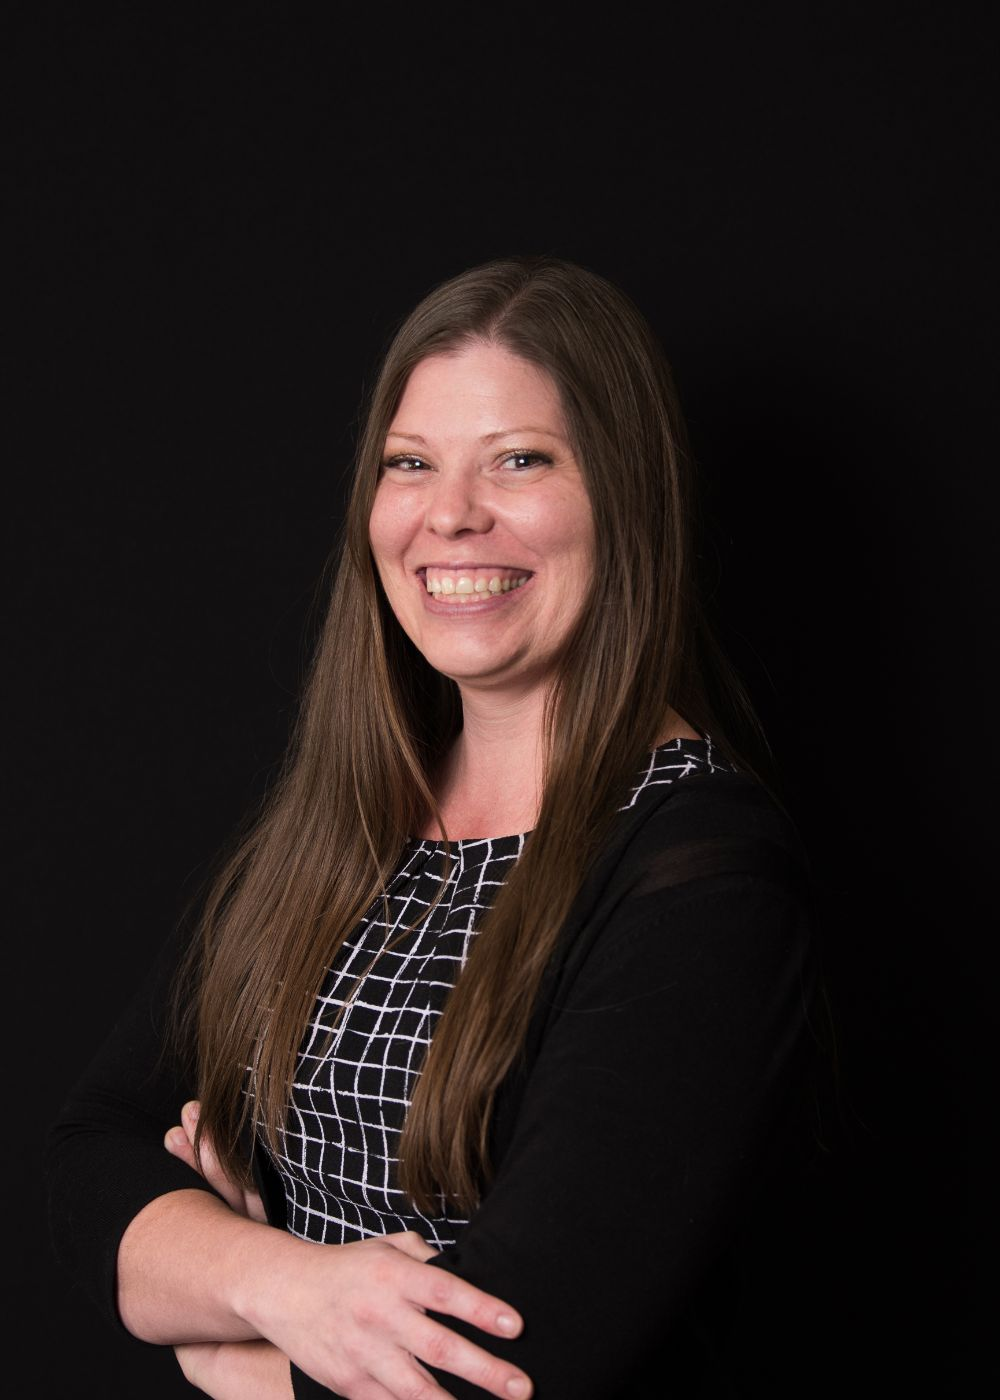 Marci White-Stumpf, CPA at Peterson and Associates